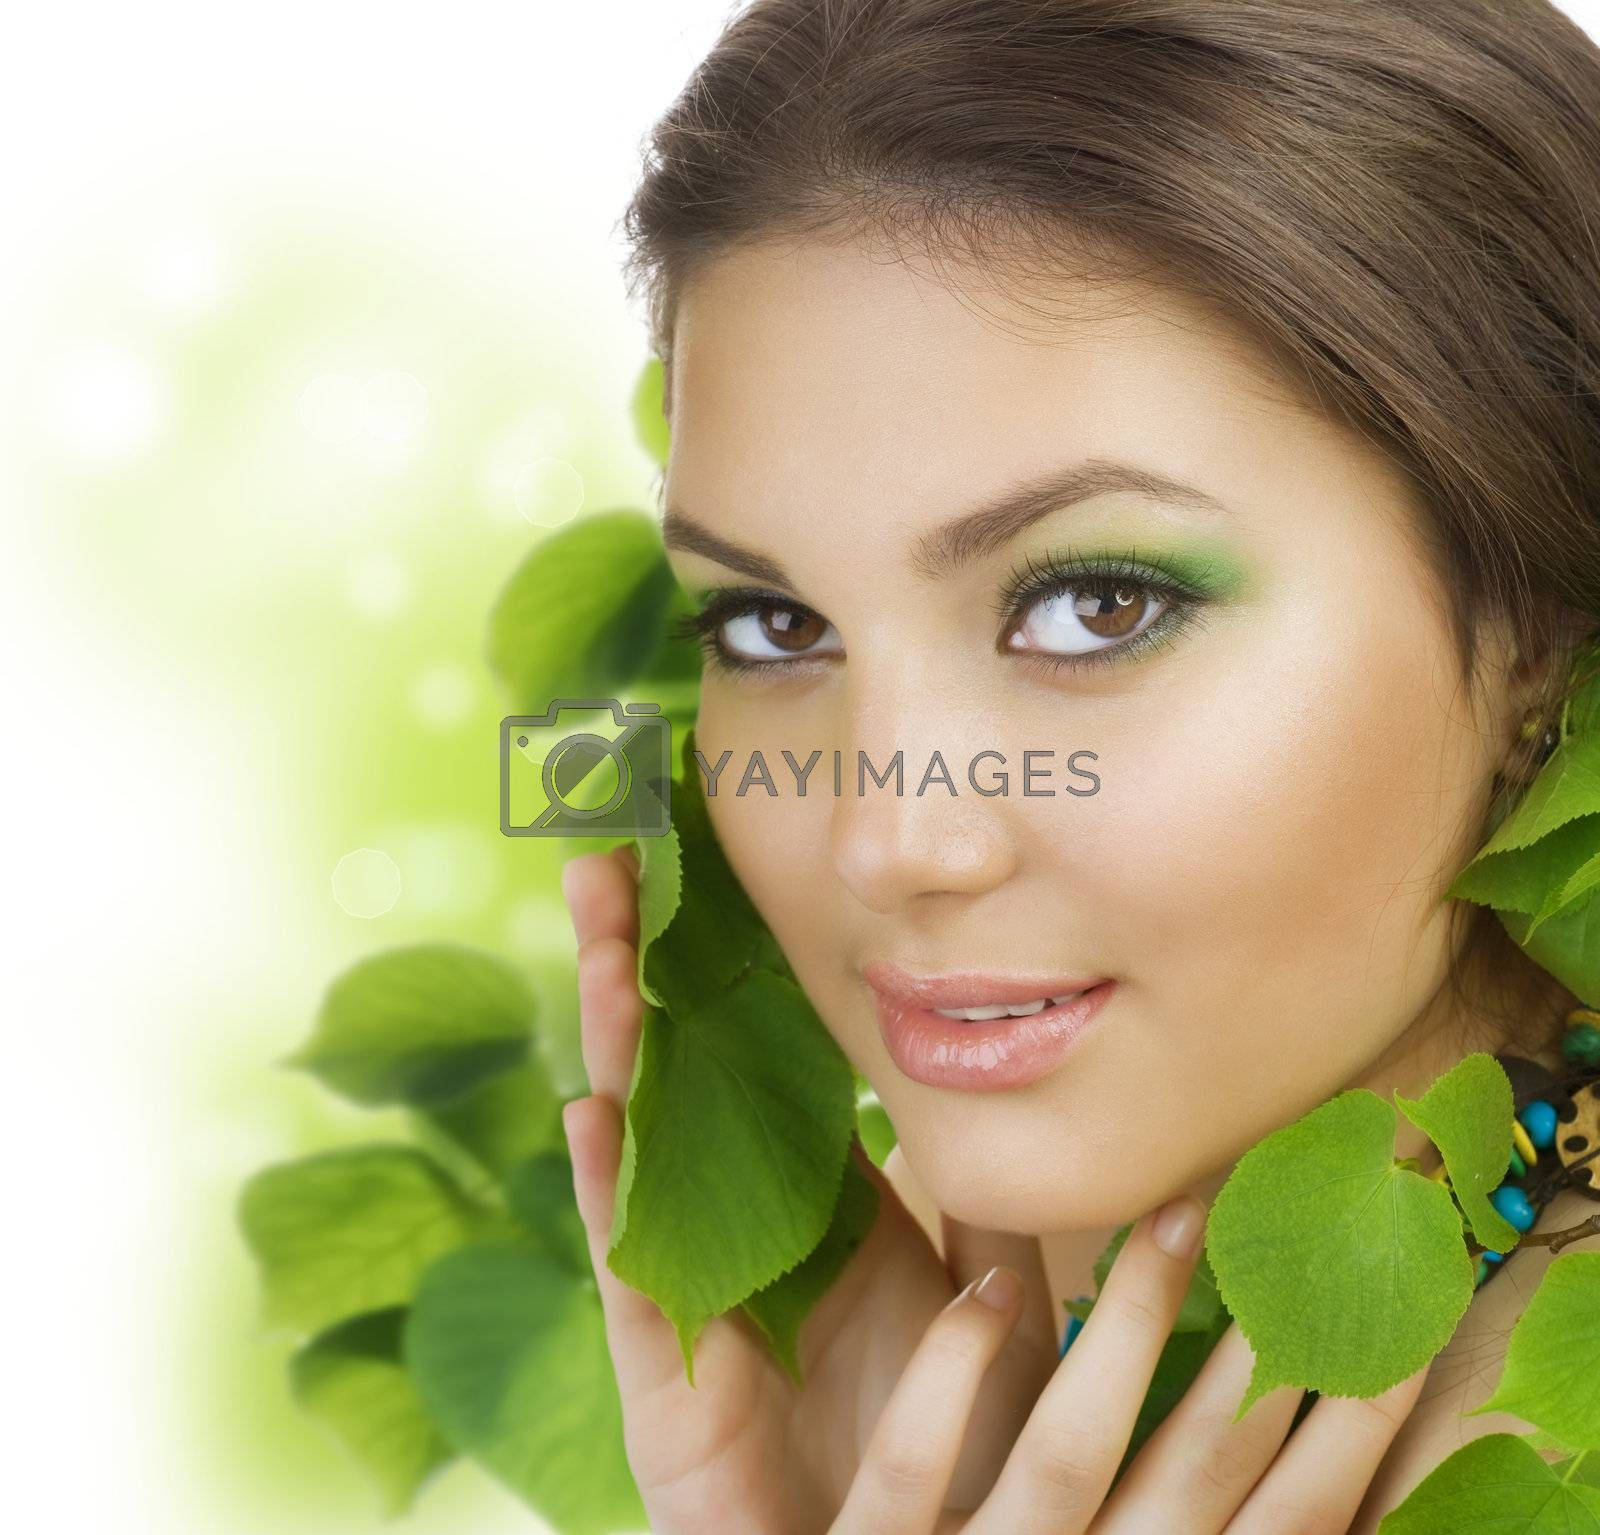 Spring Beauty Outdoors. Perfect Skin